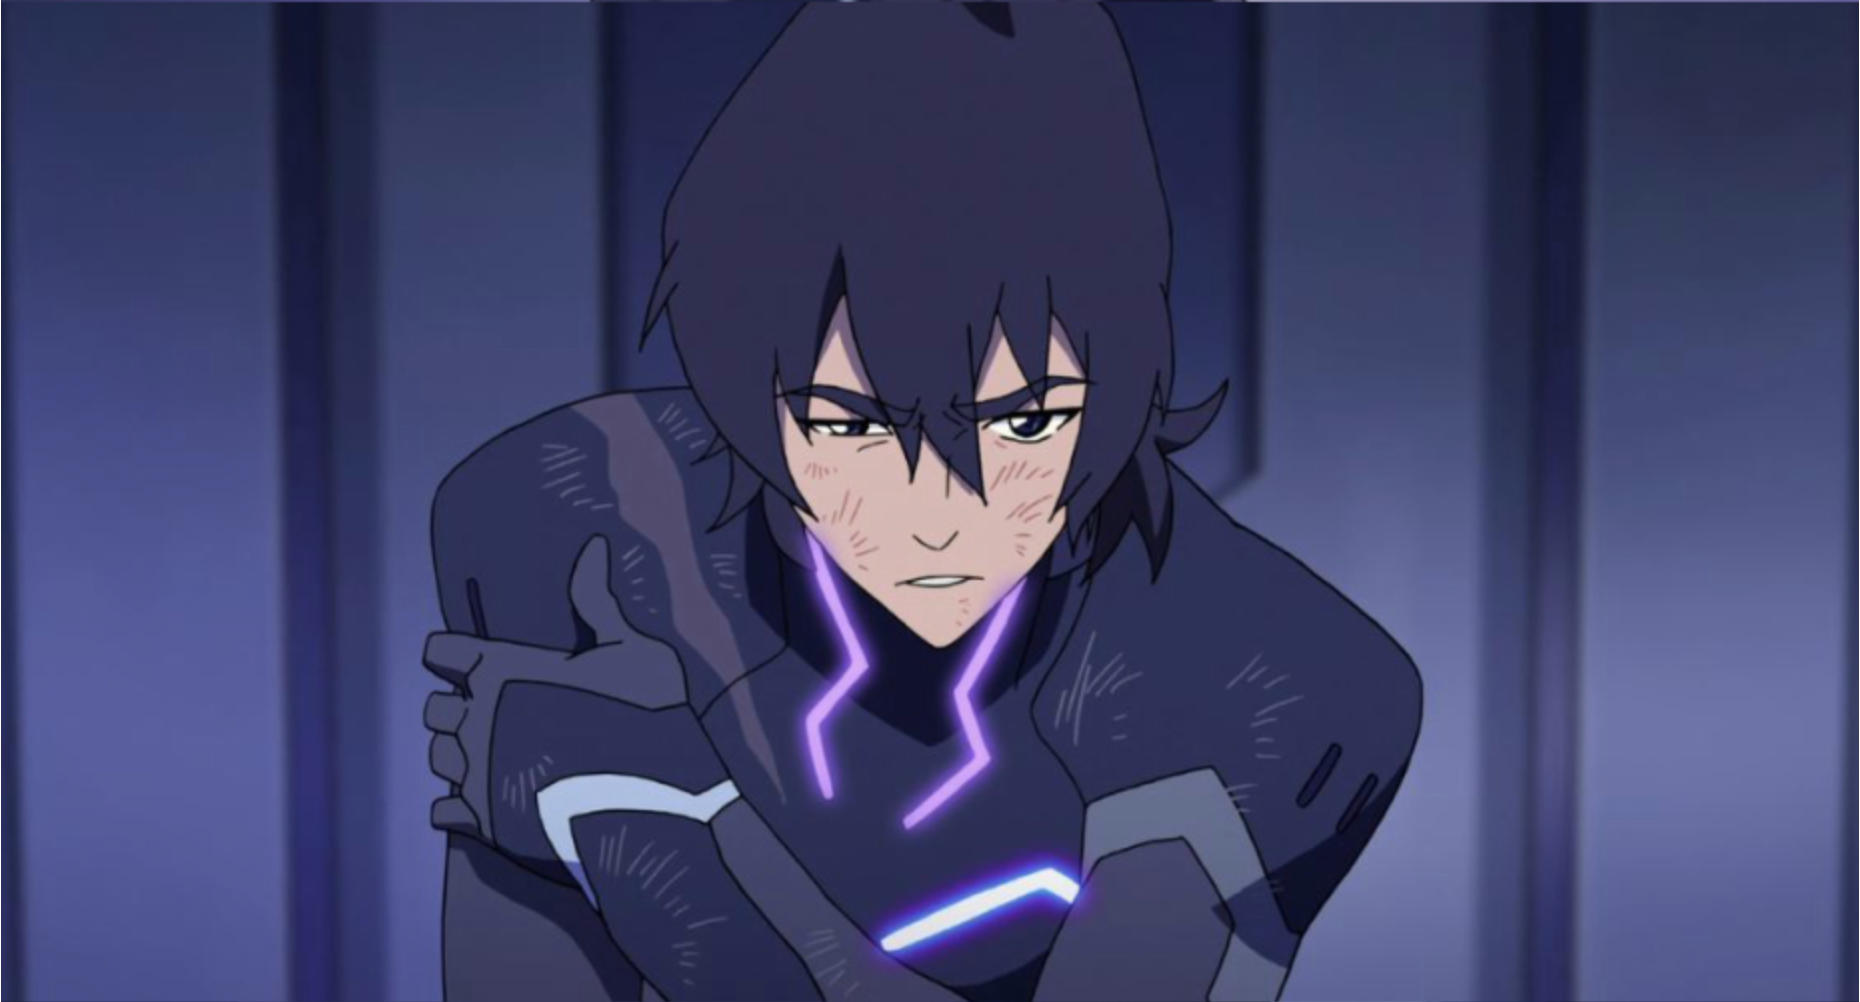 Keith Being Seriously Injured In His Galra Armor In Blade